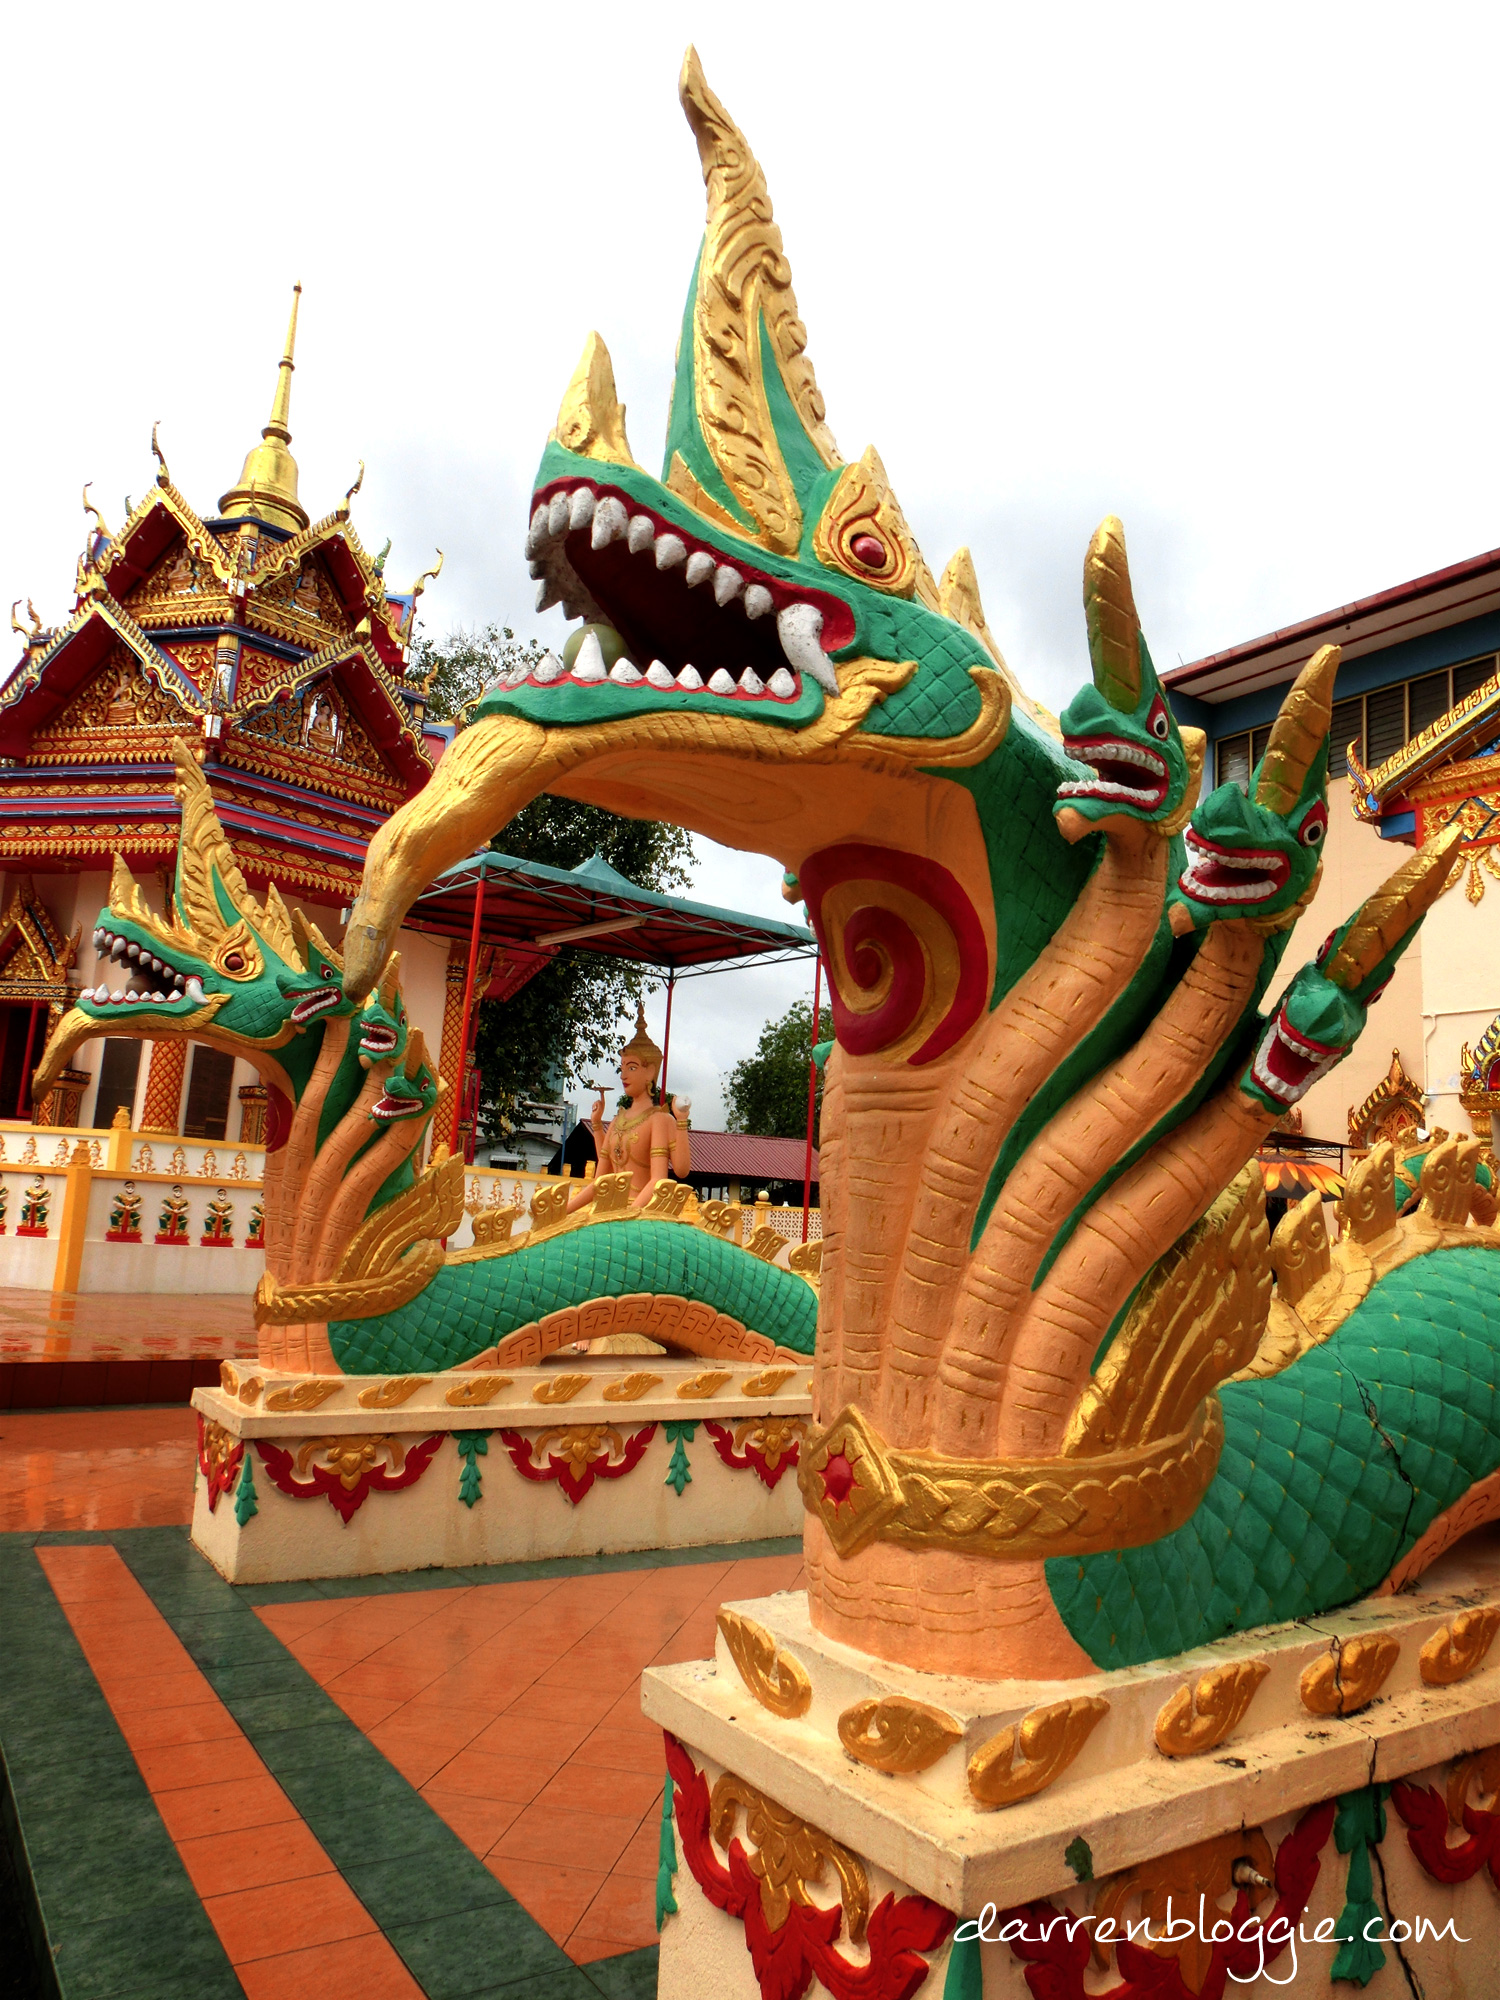 3D2N in Penang : Half Day Tour in Penang to Temples, War Museum & Penang Hill darrenbloggie